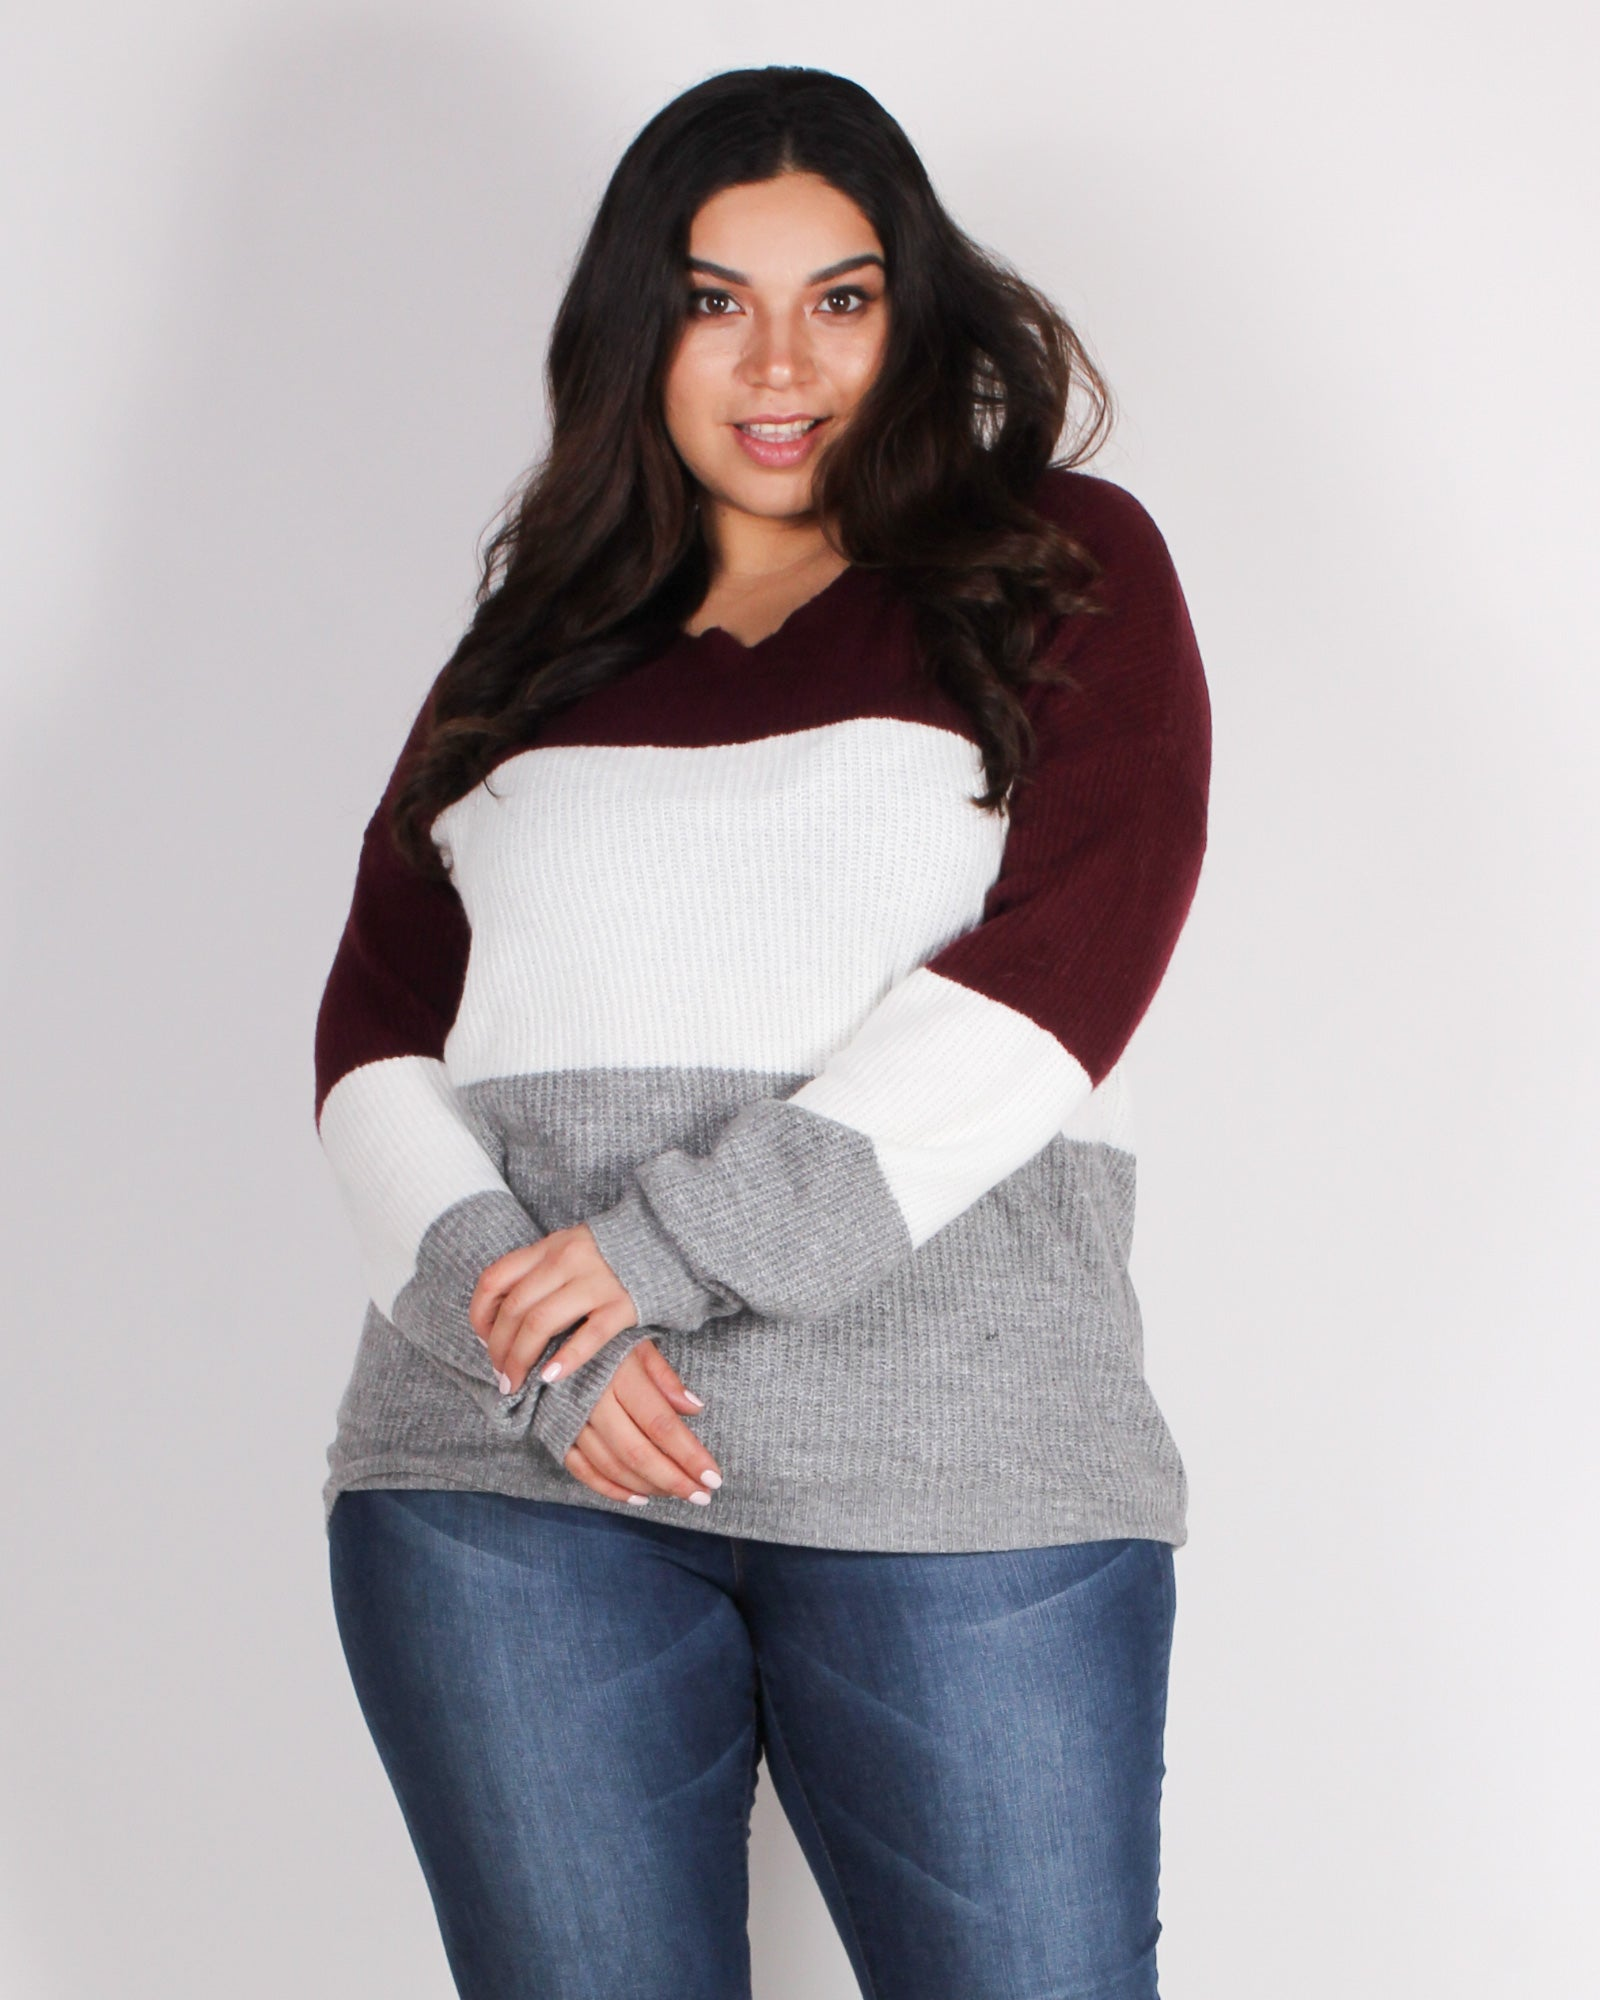 Fashion Q Shop Q You're Such a Softy Plus Sweater (Burgundy) 71491